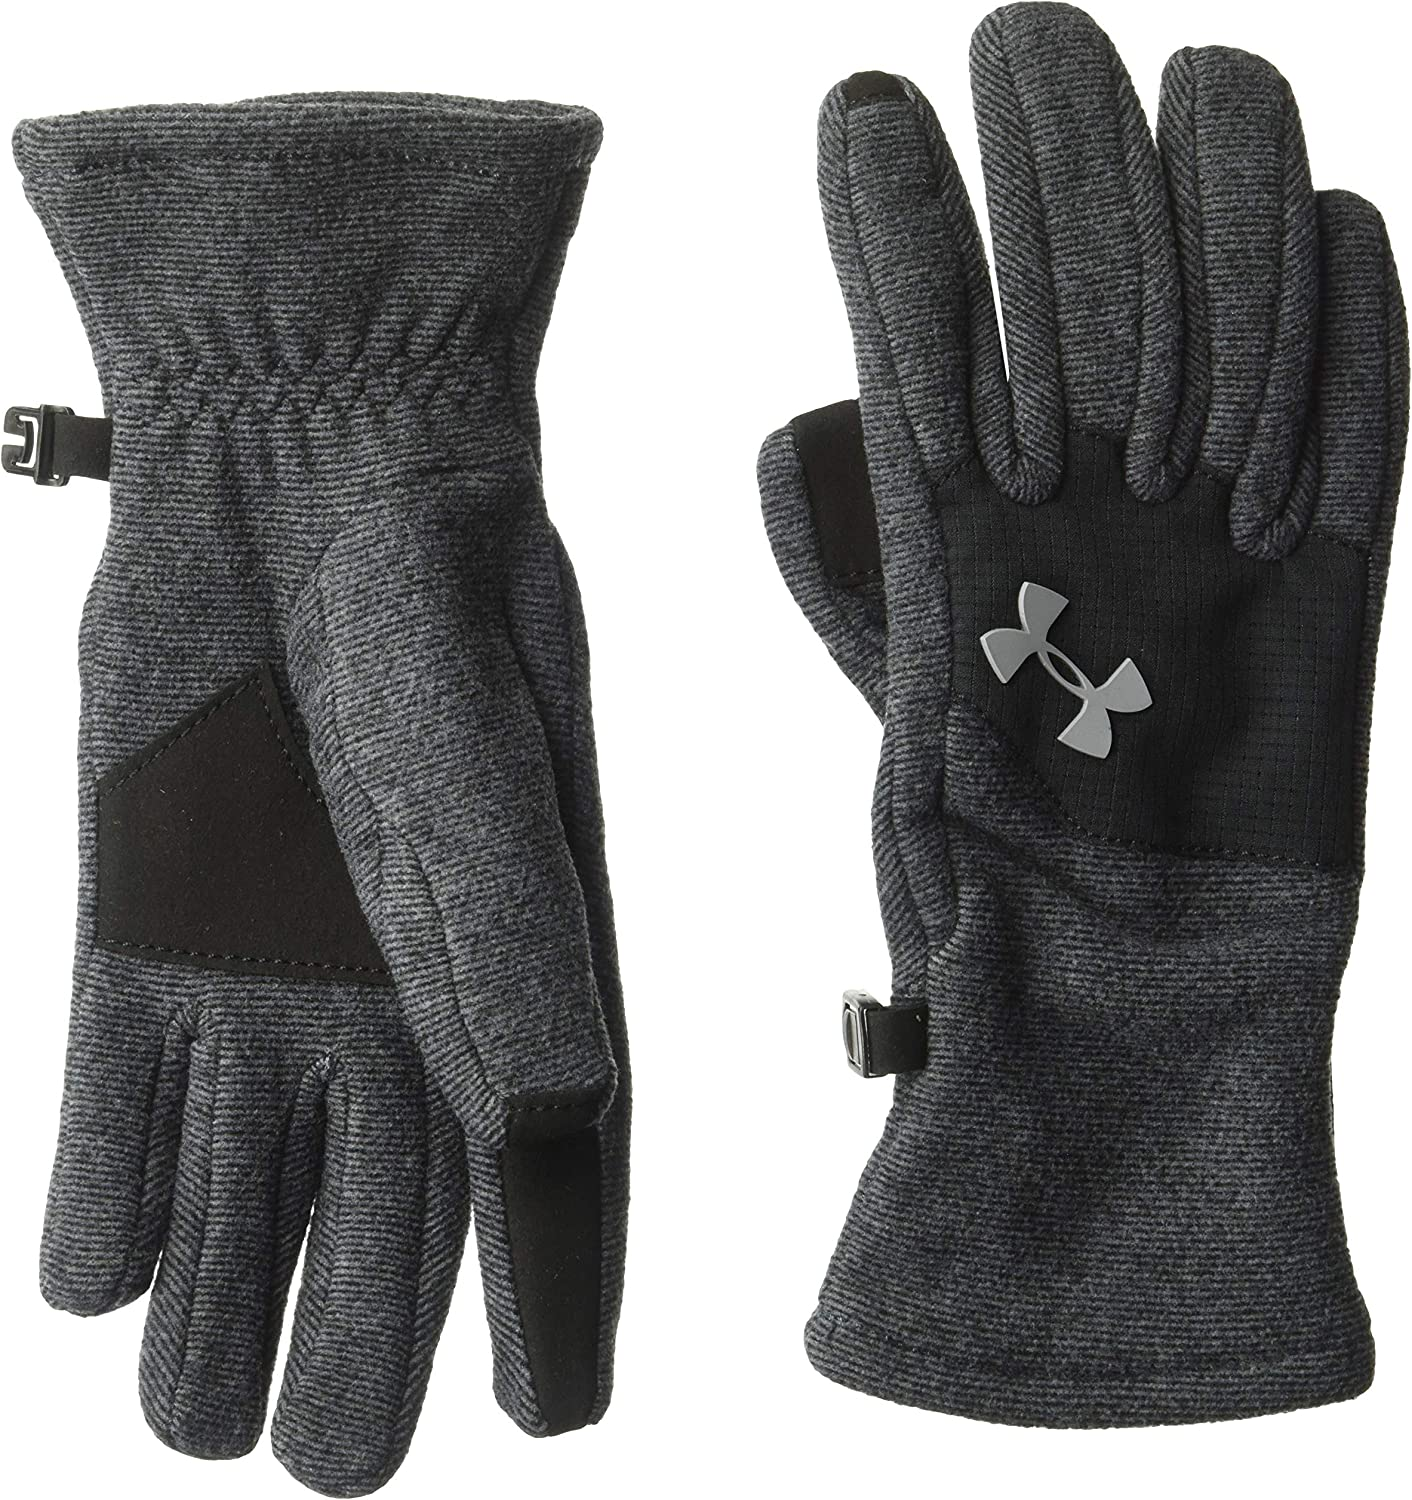 Under Armour Men's ColdGear Infrared Fleece 2.0 Gloves